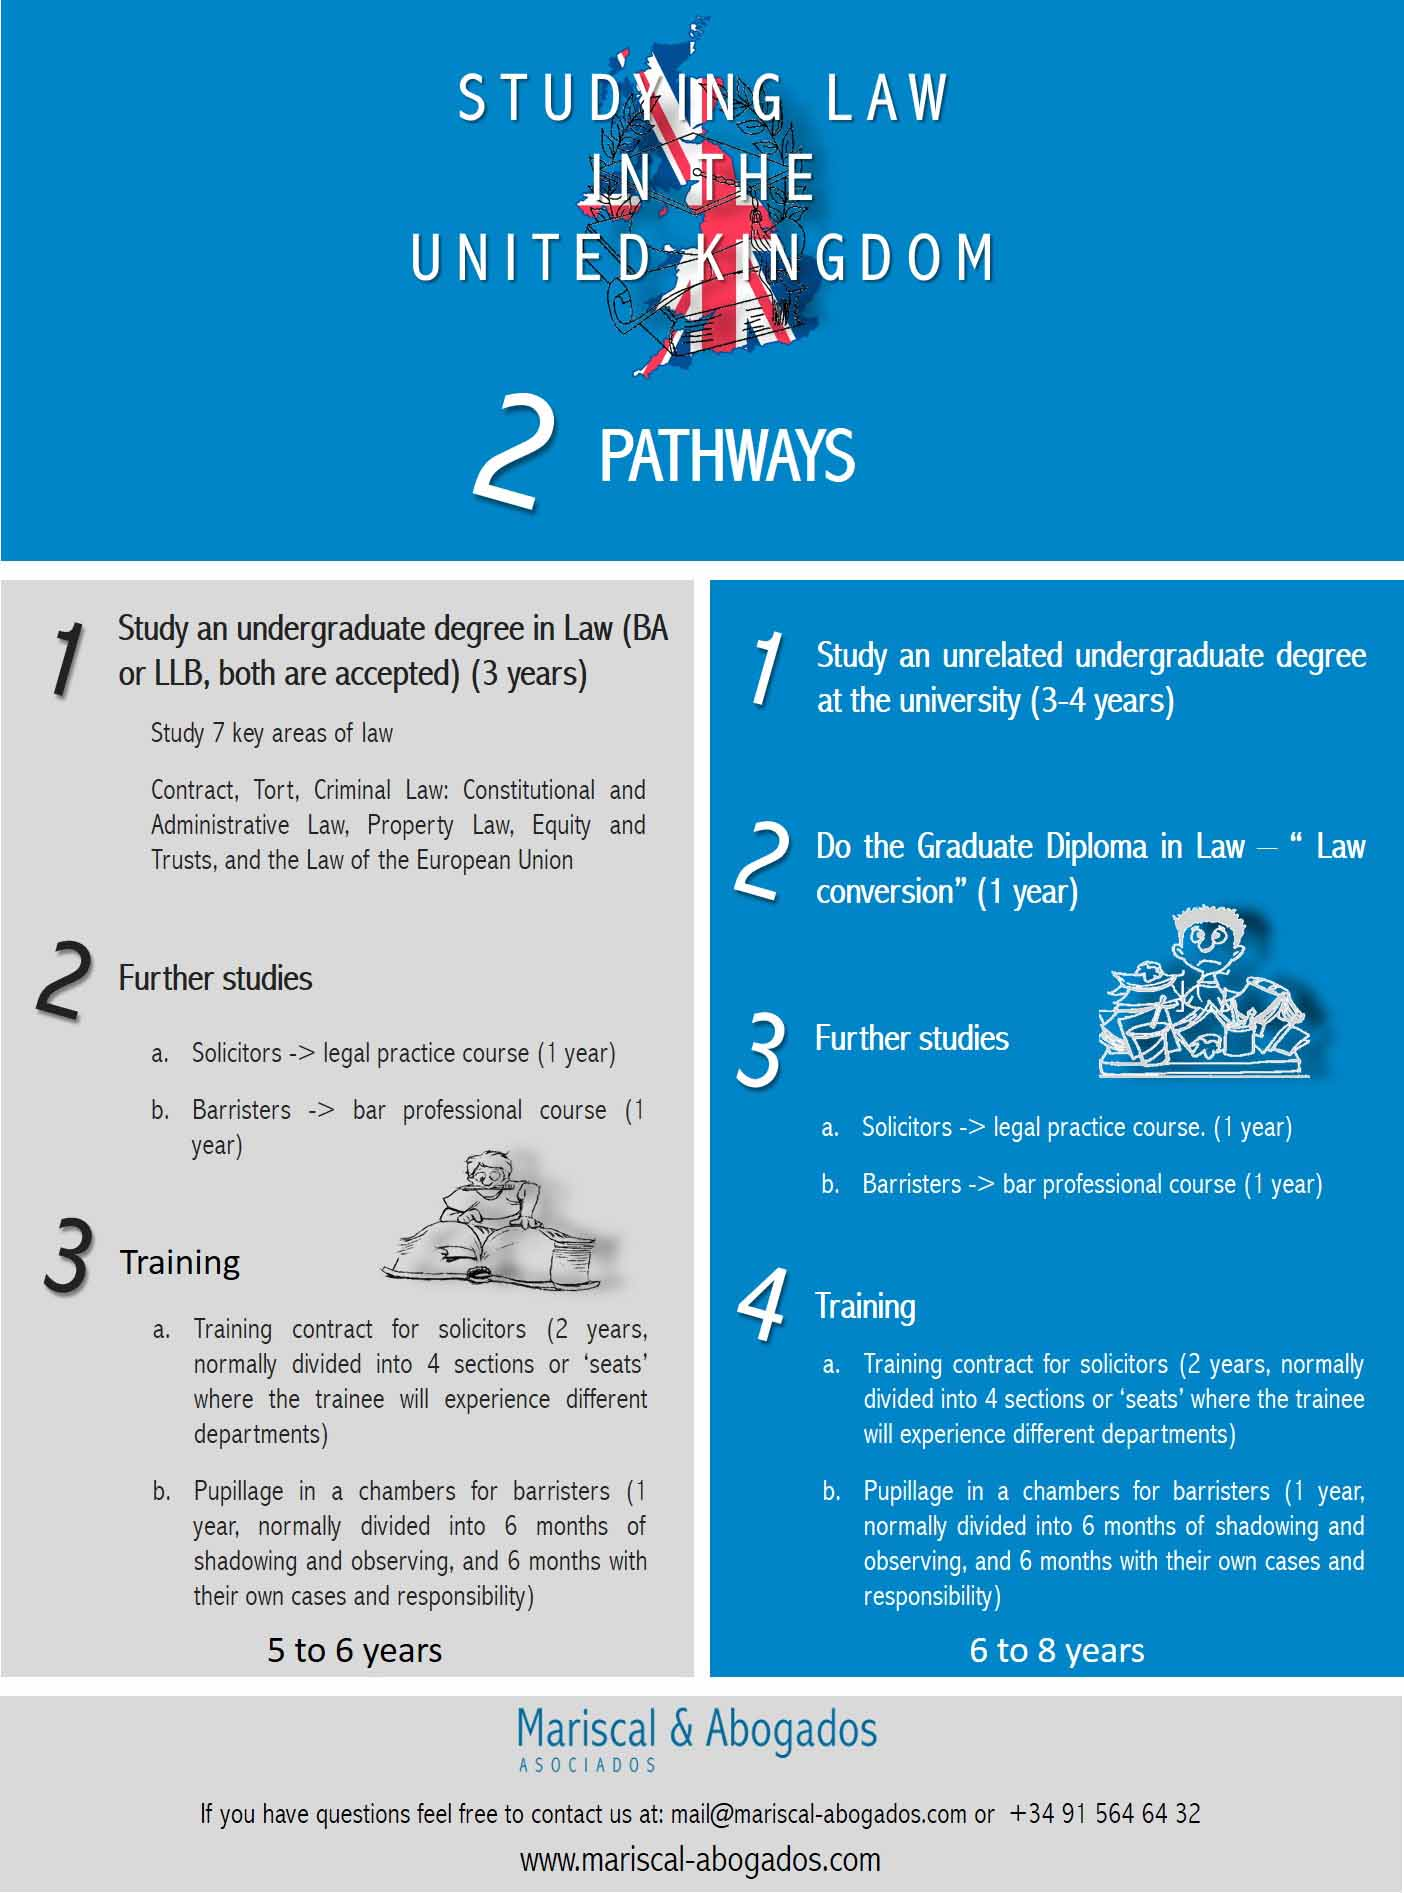 74 2016 Studying Law in the United Kingdom